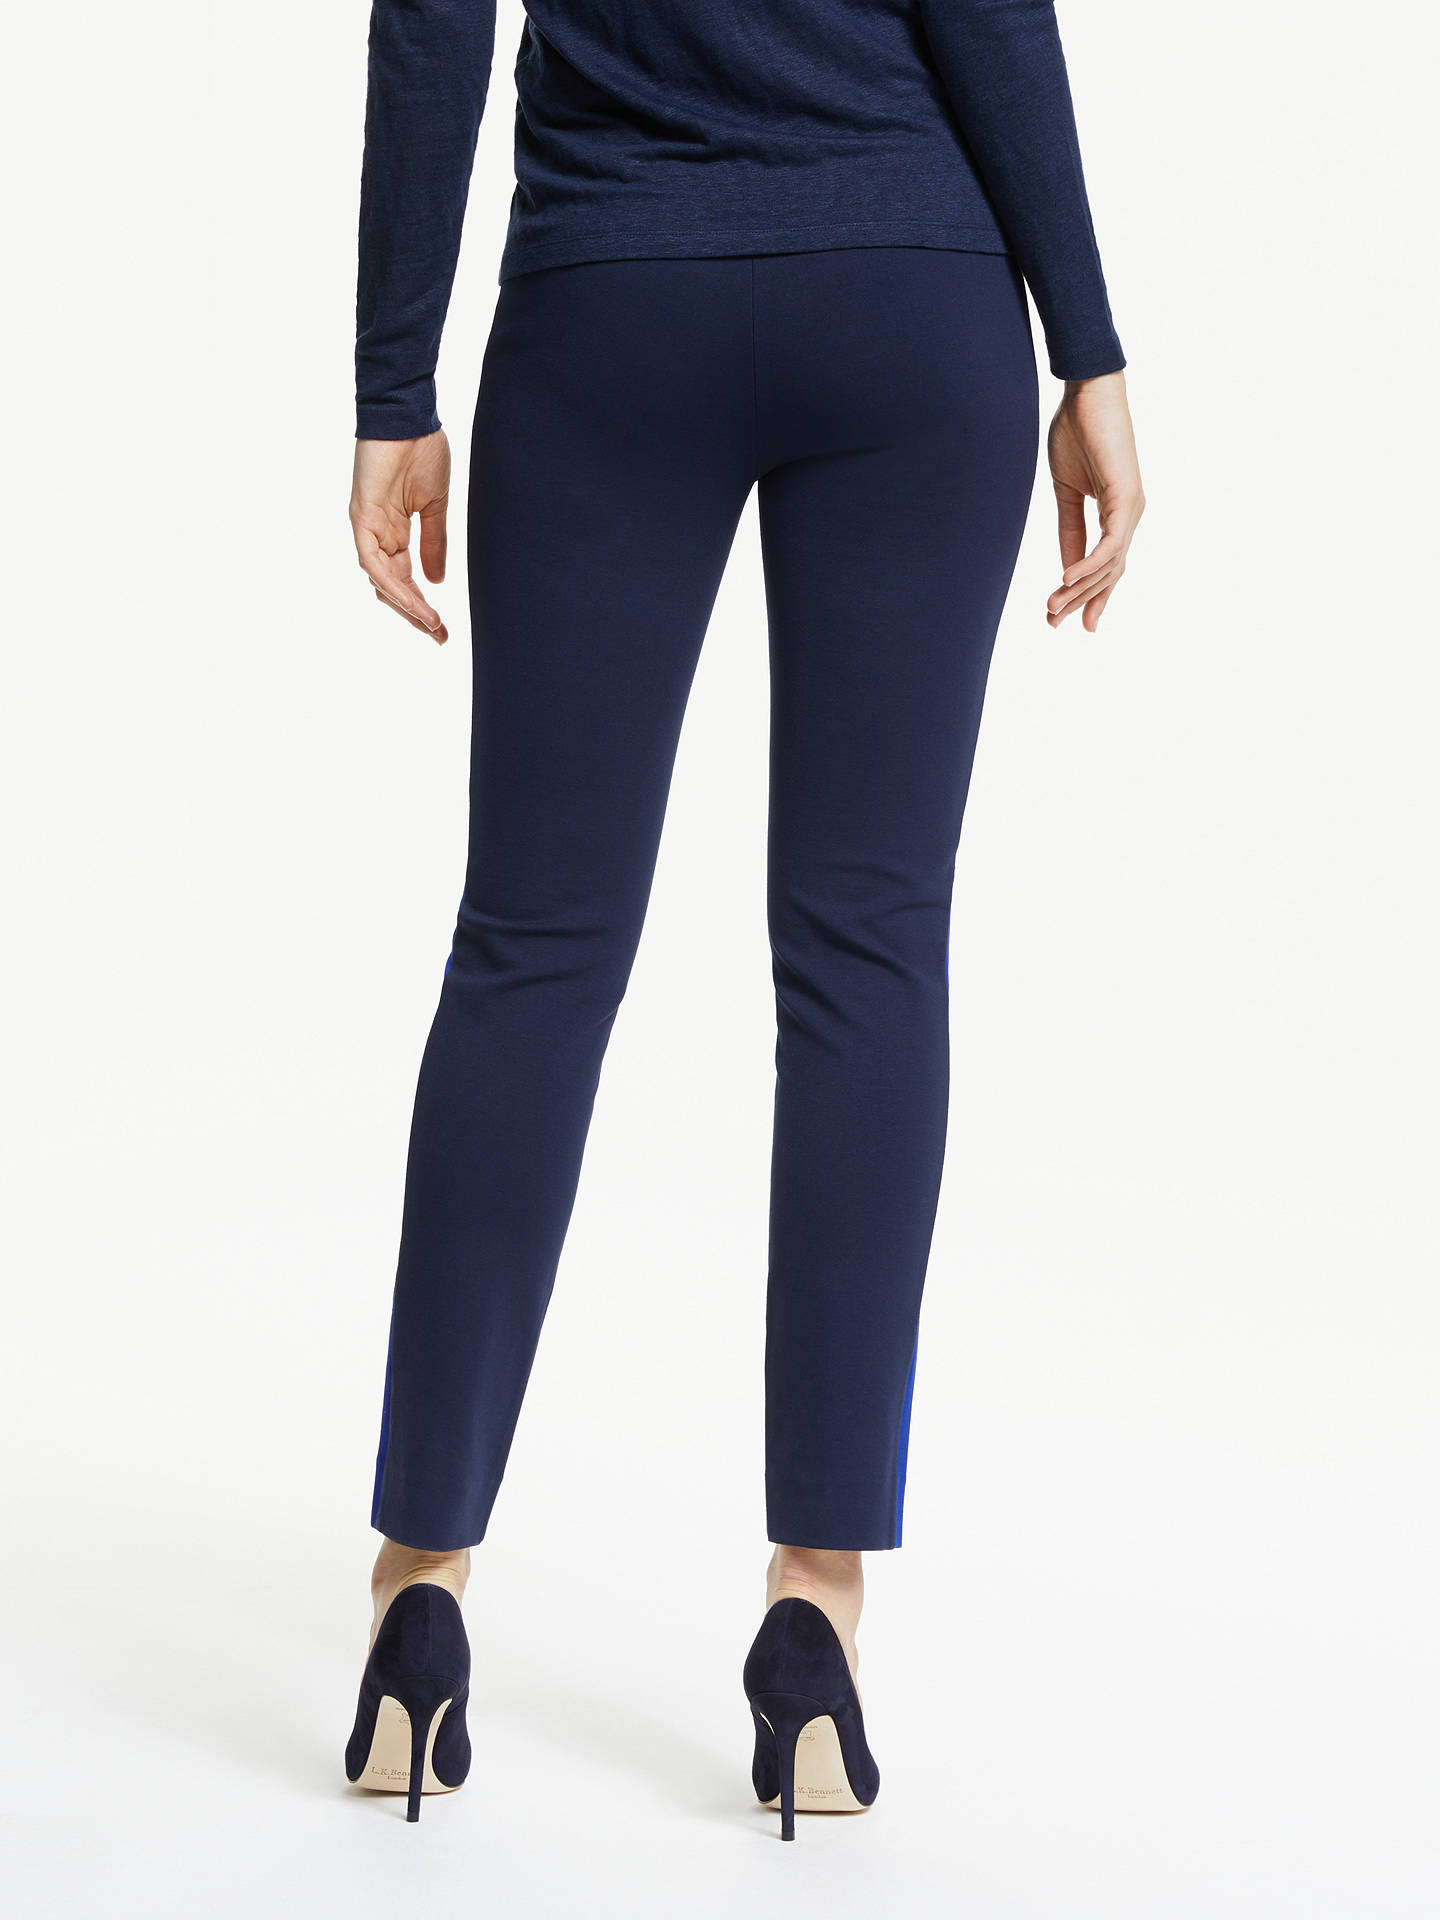 Buy Winser London Miracle Classic Stripe Trousers, Midnight Blue/Navy, 8 Online at johnlewis.com